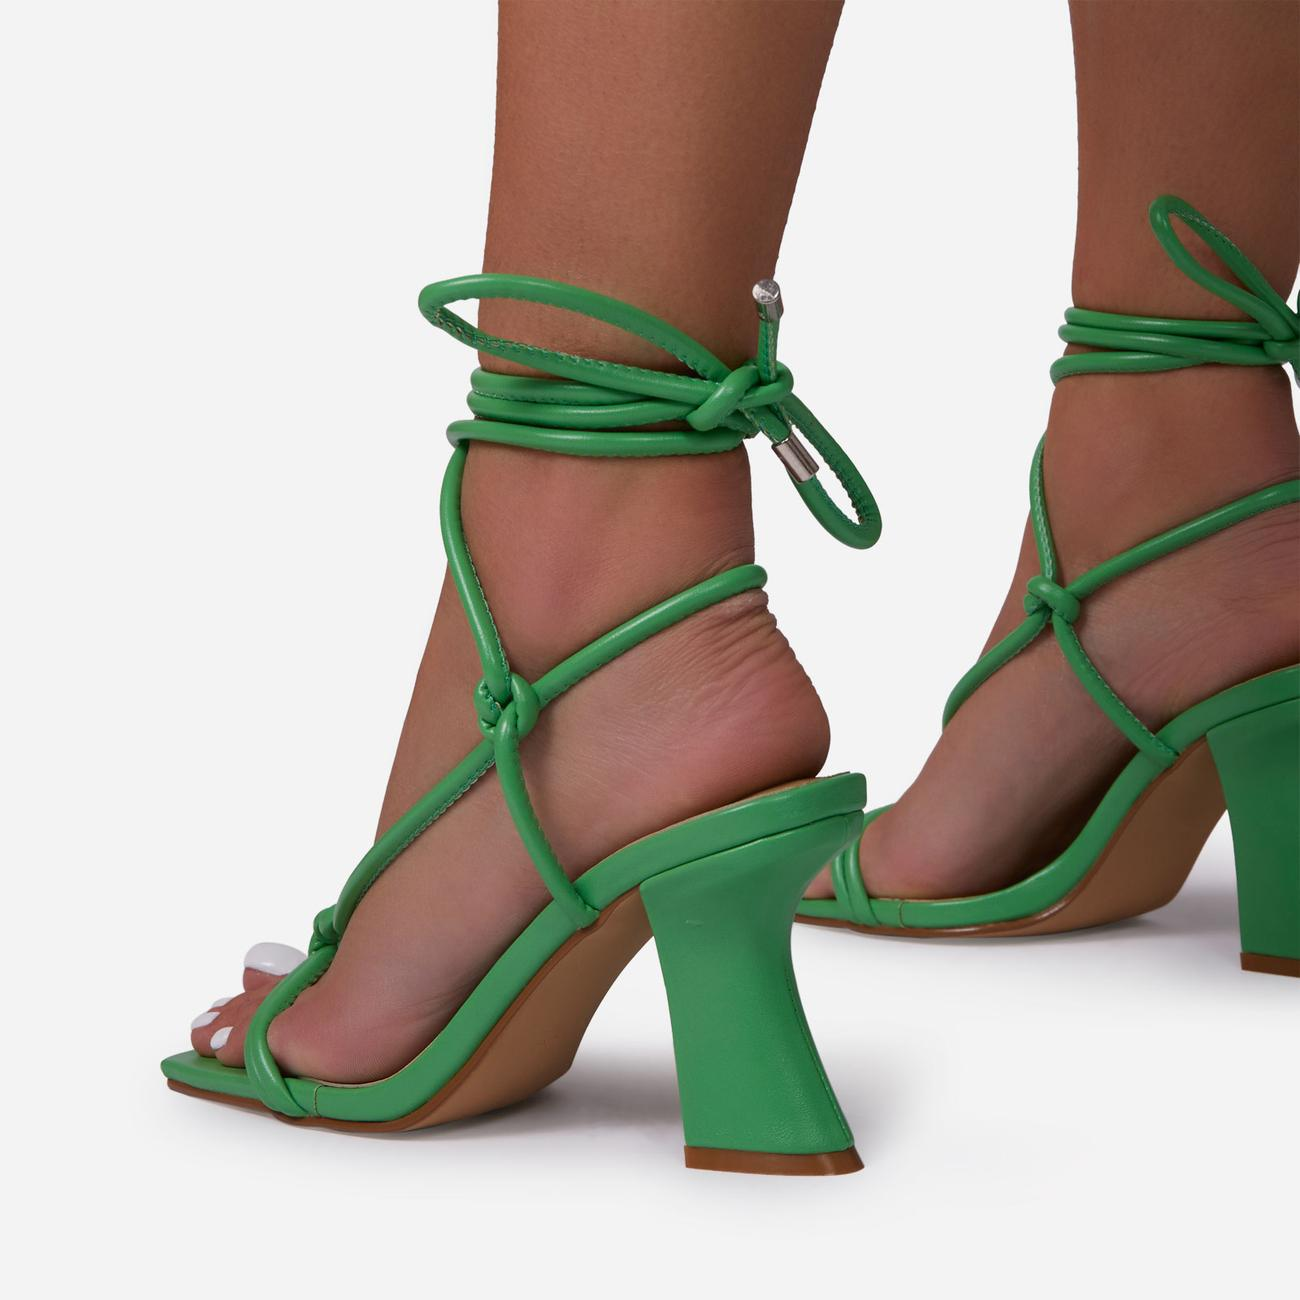 Harmony Knotted Detail Lace Up Square Toe Curved Low Block Heel In Green Faux Leather Image 4